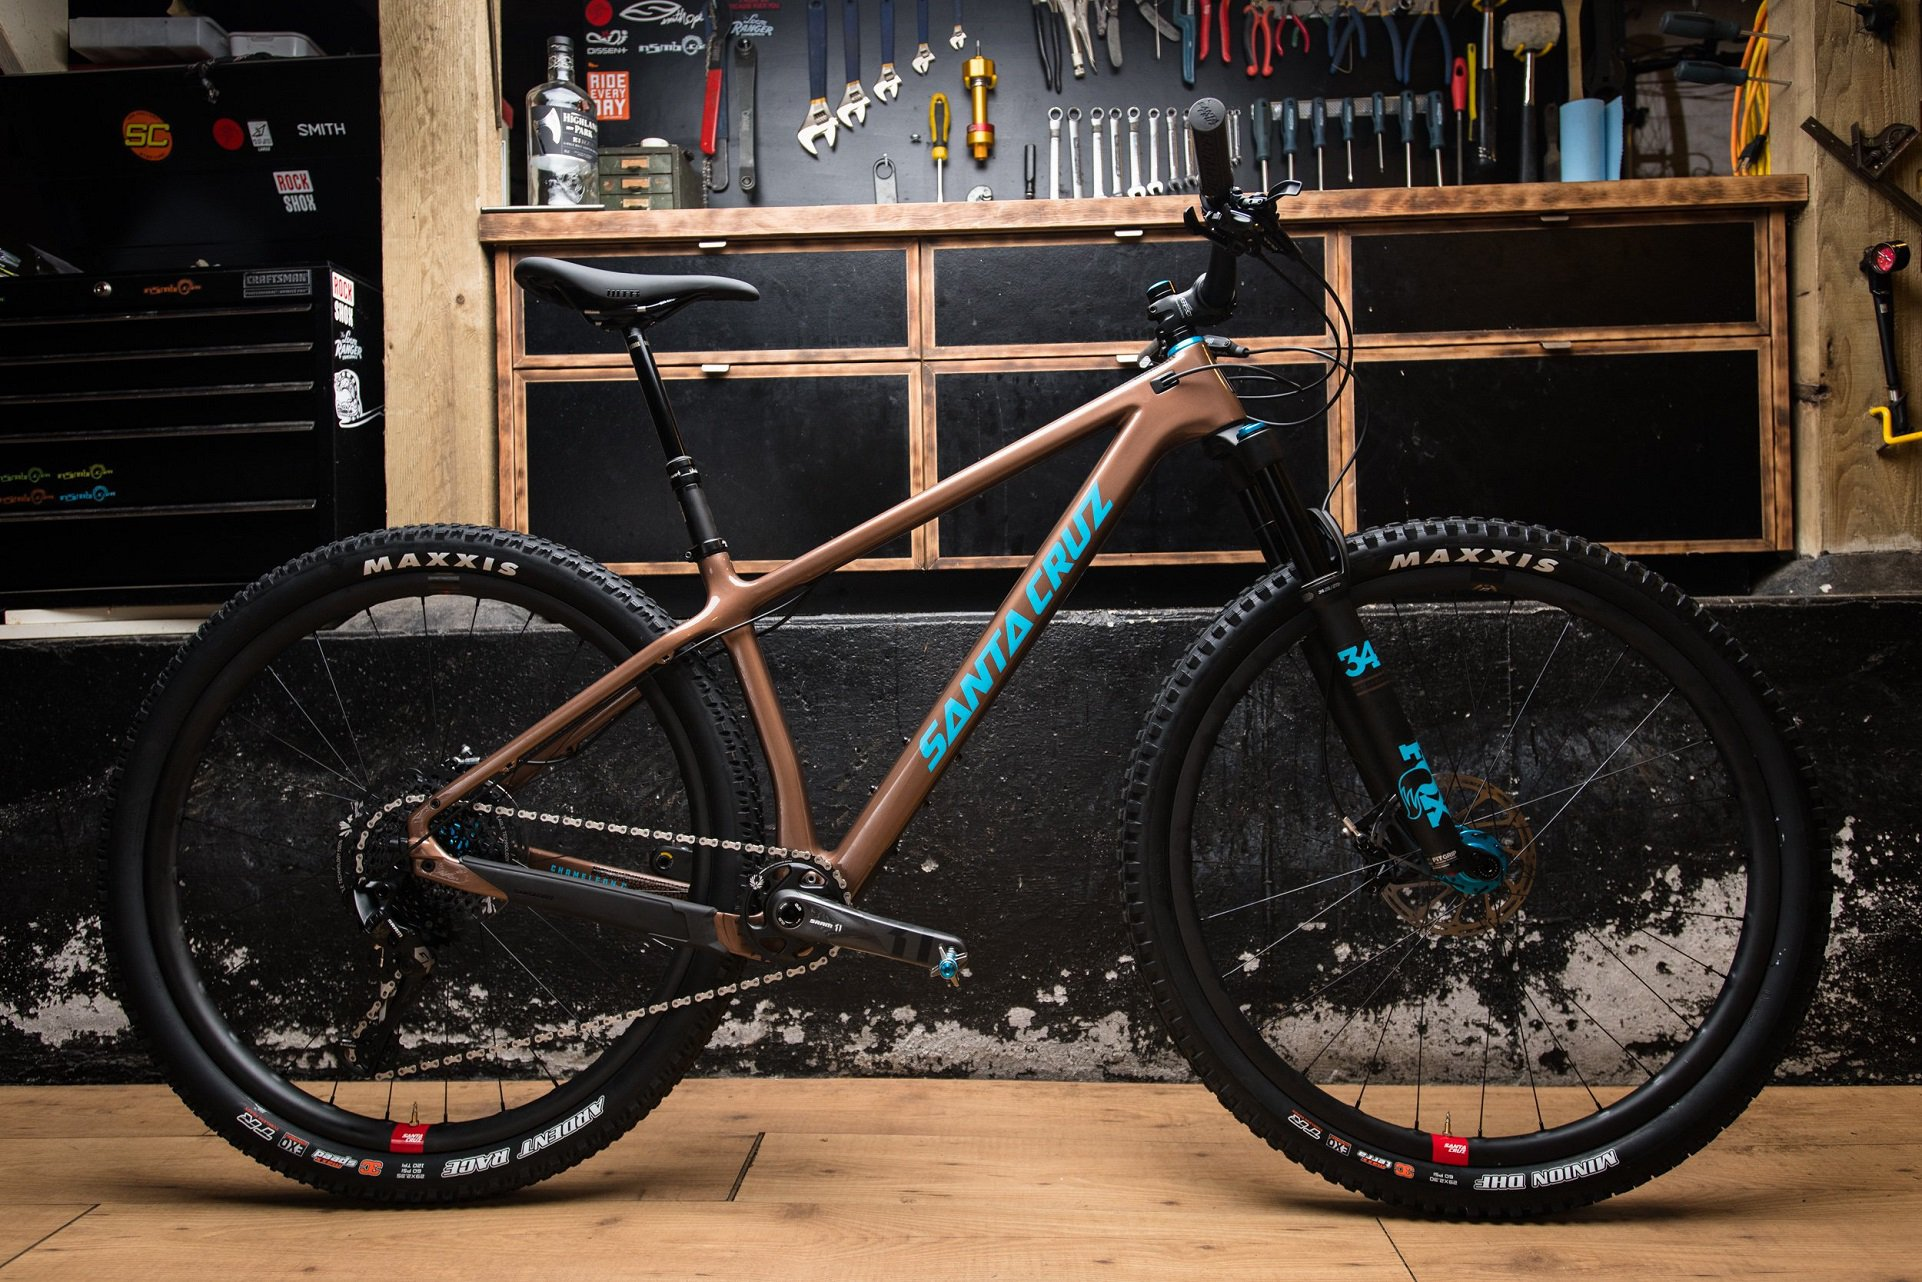 nsmb2019-gearreview-firstlook-santacruz-chamele.original_rOOQcZw.jpg